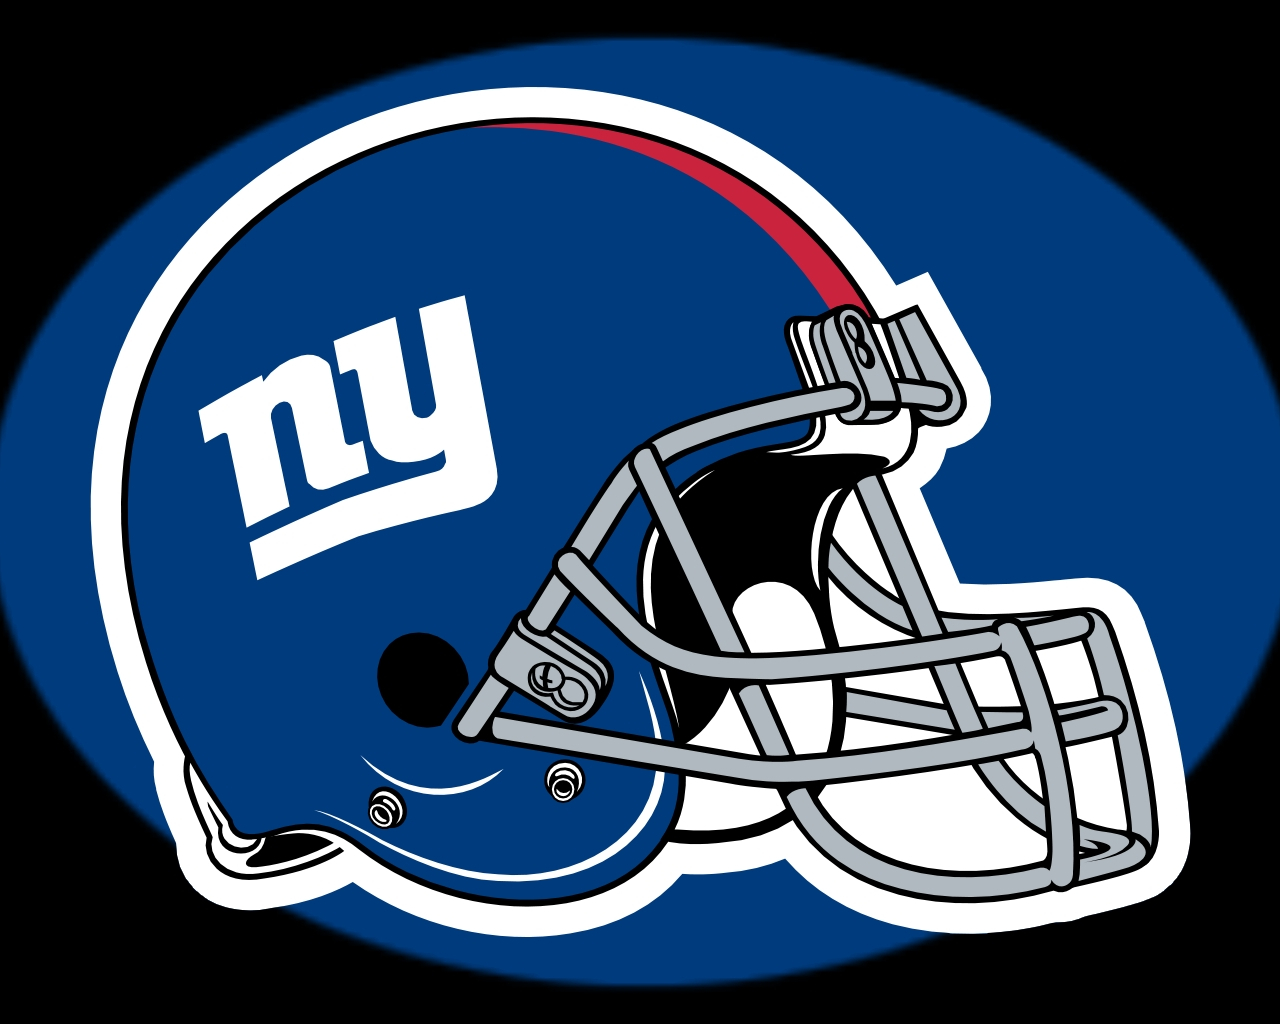 Free Download New York Giants Helmut 1365x1024 For Your Desktop